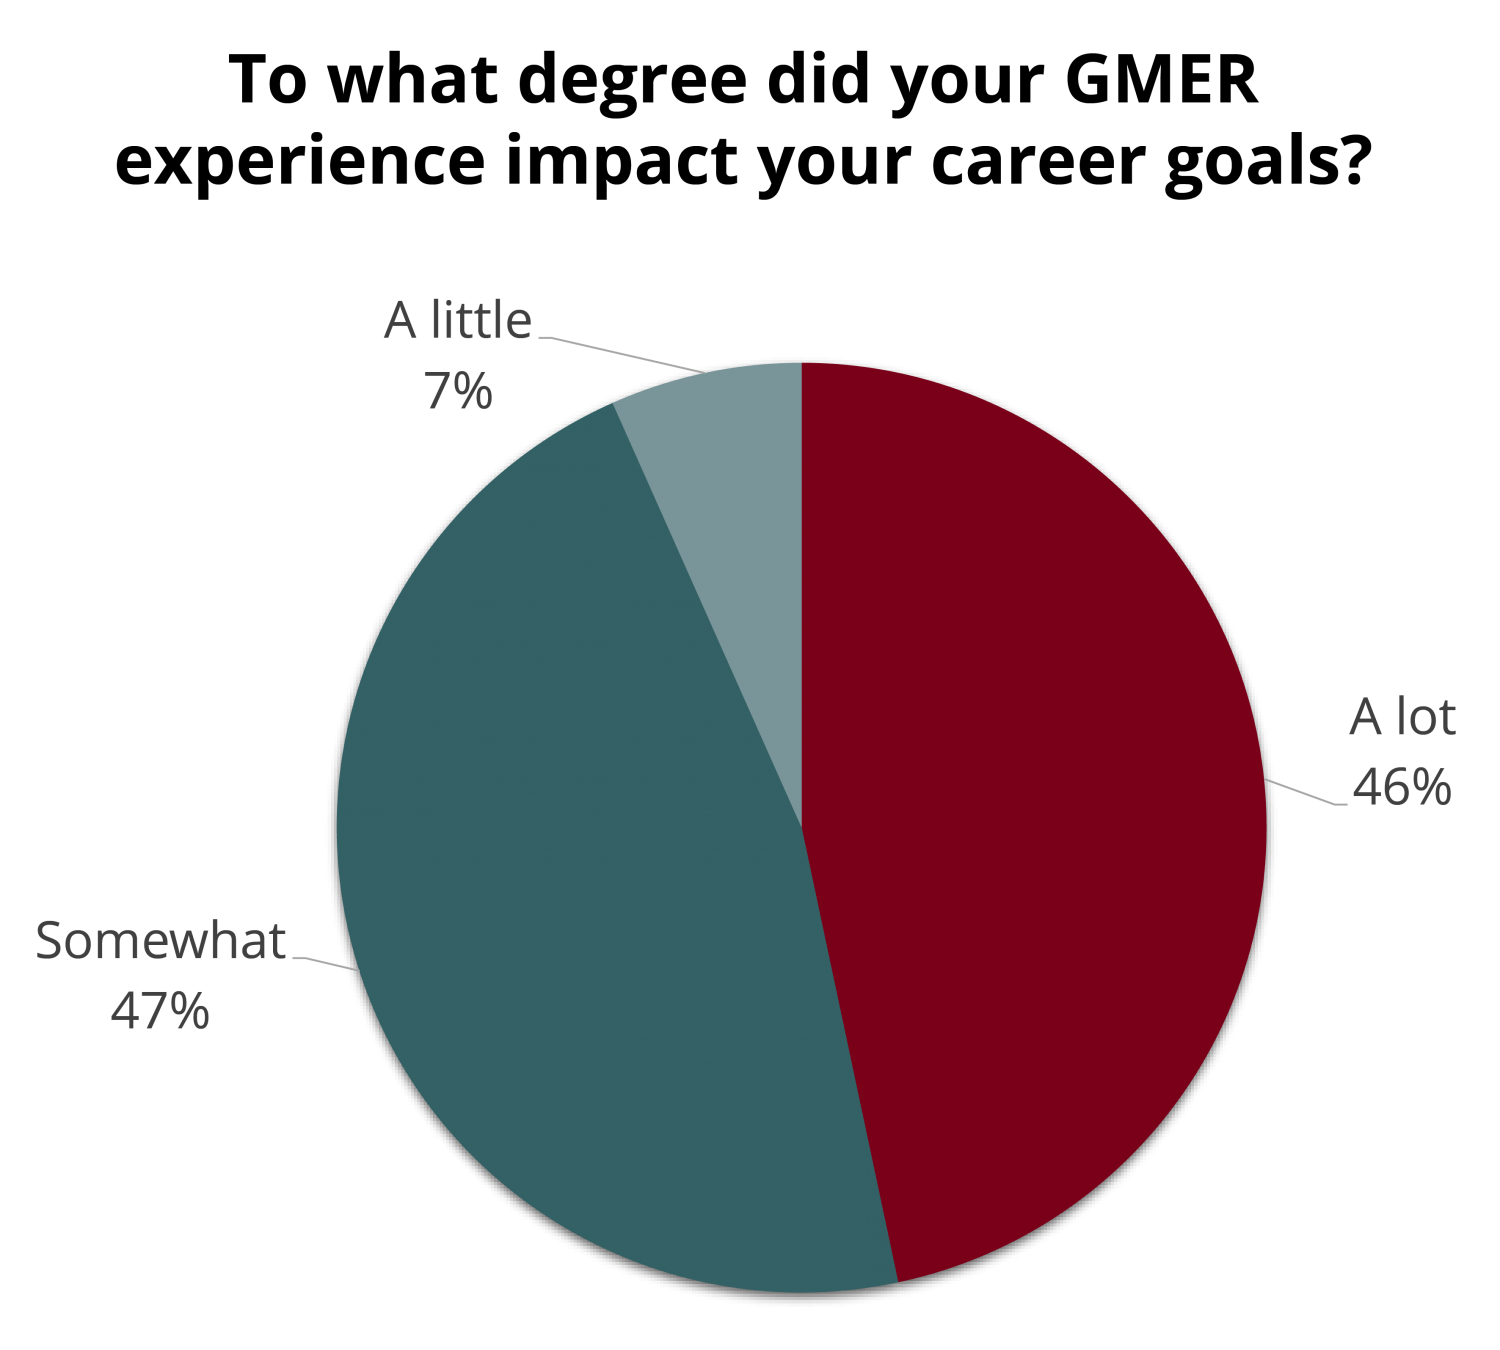 """Pie chart with title """"To what degree did your experience impact your career goals?"""". 46% report a lot, 47% report somewhat, and 7% report a little."""